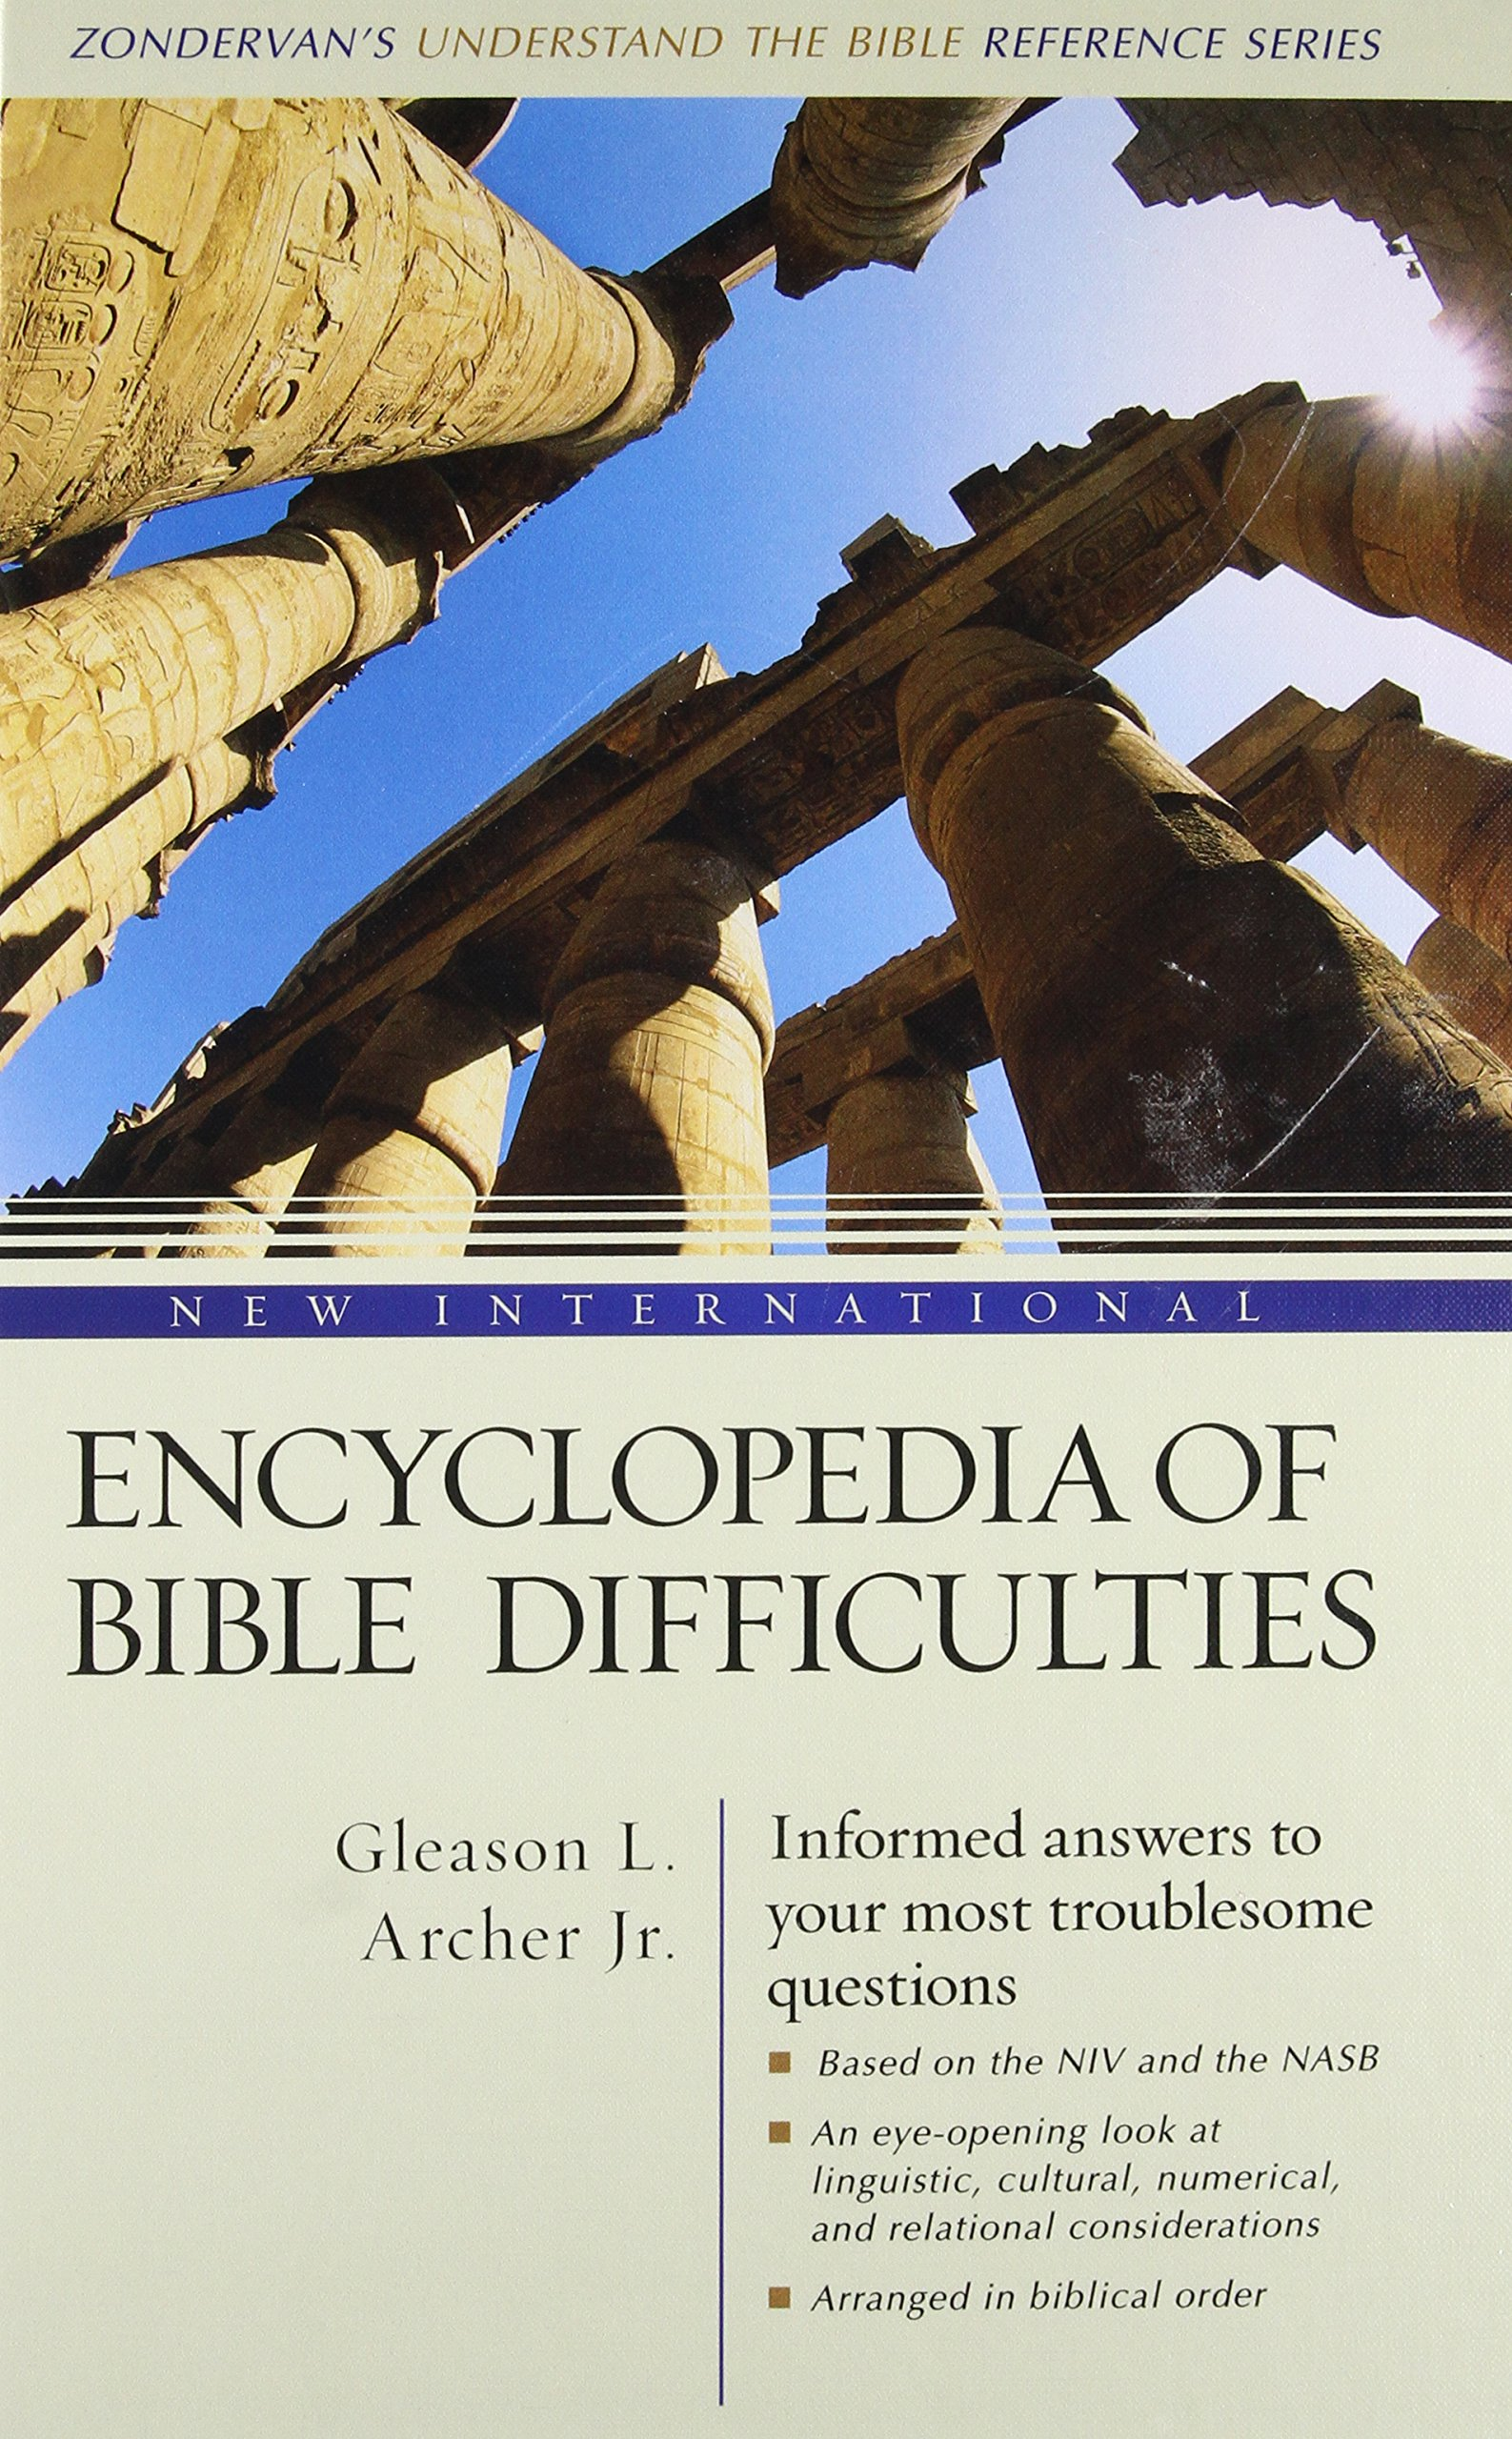 New International Encyclopedia of Bible Difficulties by HarperCollins Christian Pub.